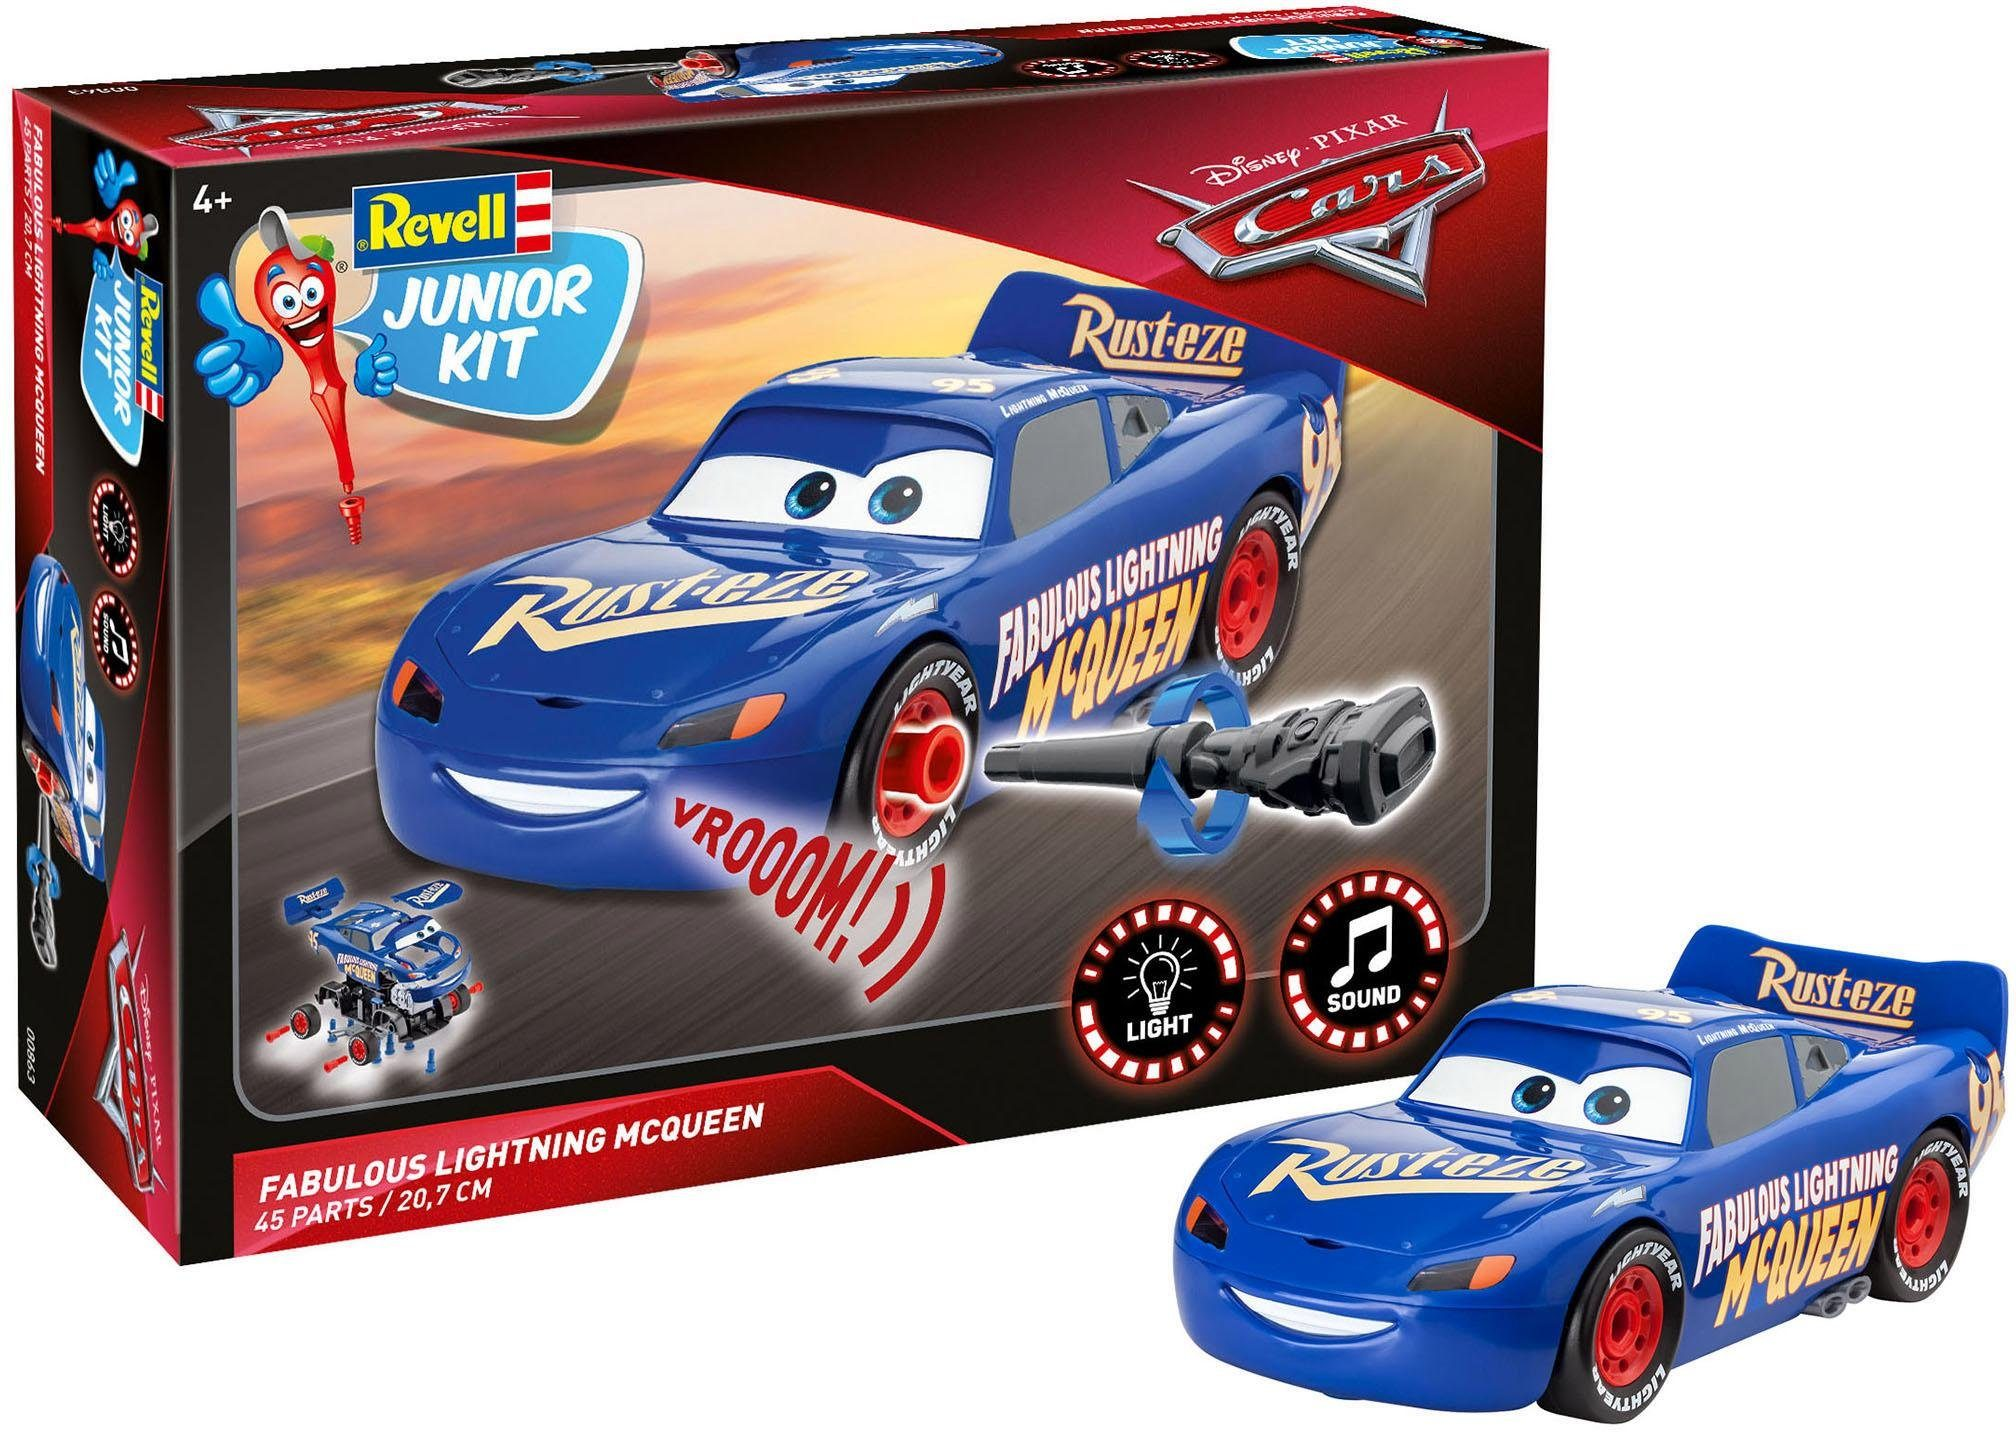 Revell Modellbausatz Auto m. Licht/Sound, »Junior Kit Disney Pixar Cars, Fabulous Lightning McQueen«